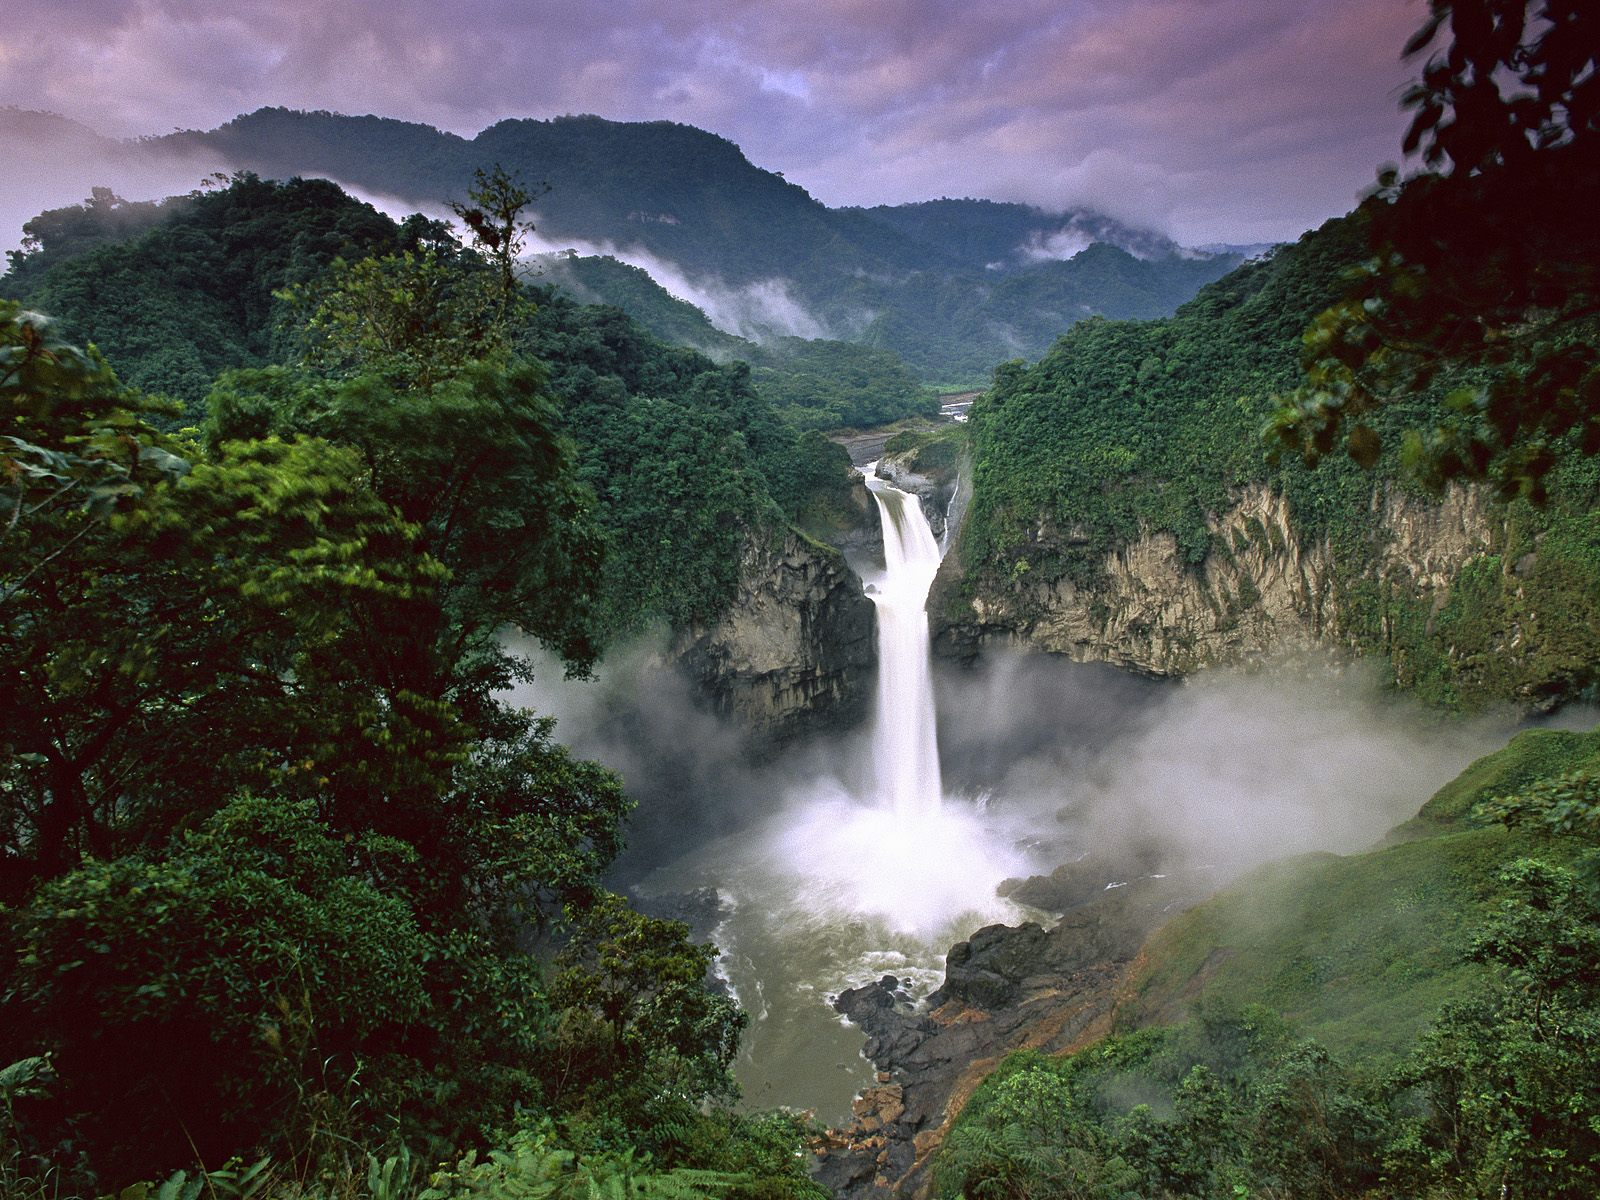 Amazon amazon rainforest photo 33125138 fanpop - Amazon wallpaper hd ...